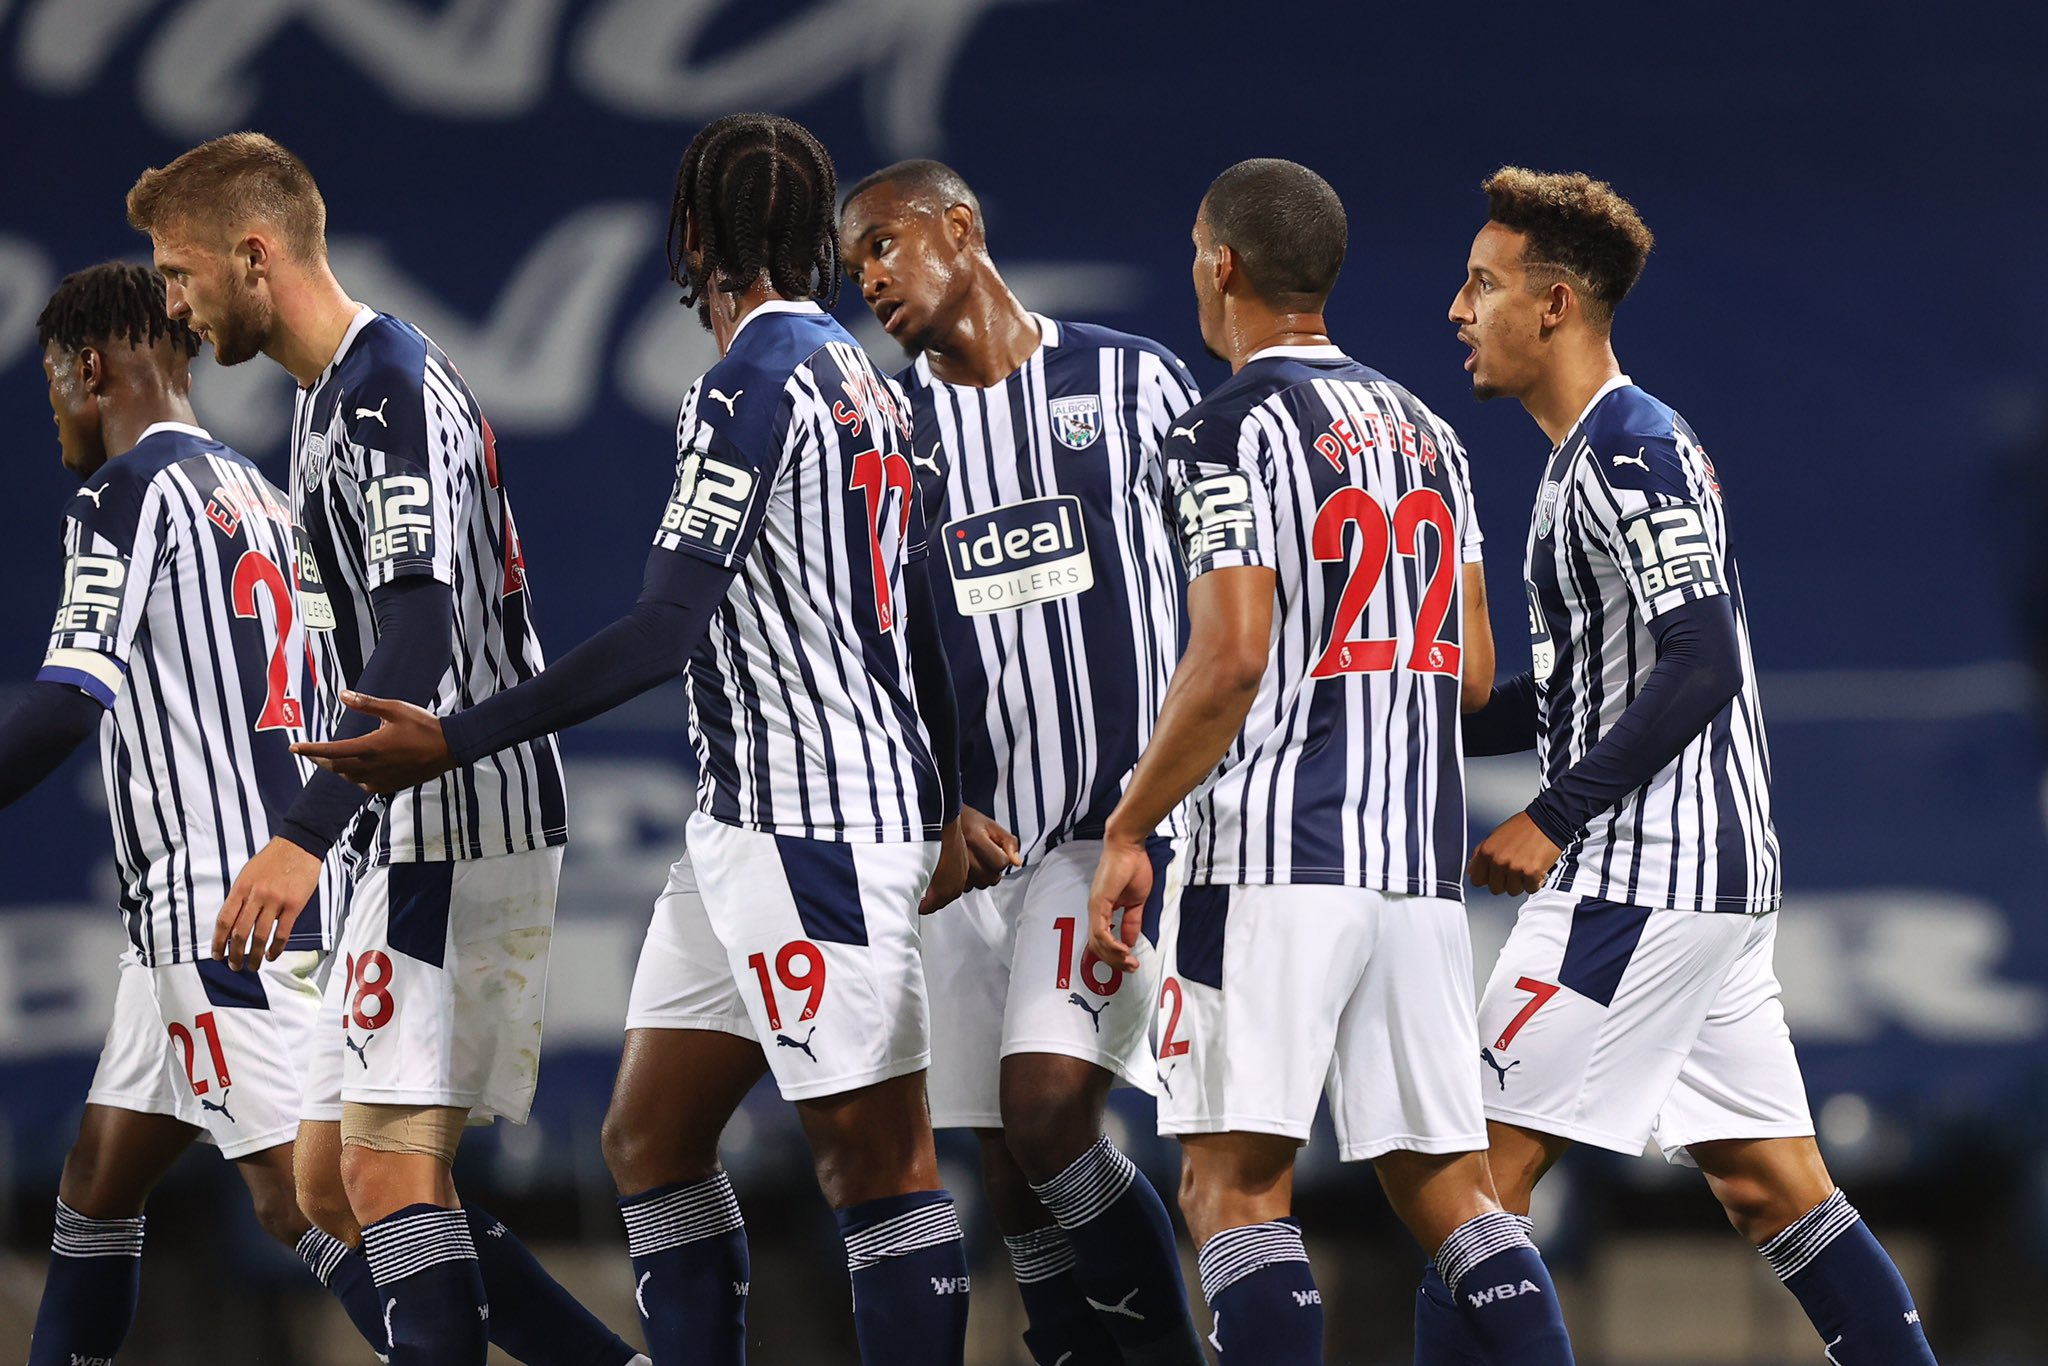 Carabao Cup: Ajayi Benched As West Brom Beat Harrogate, Advance Into Third Round